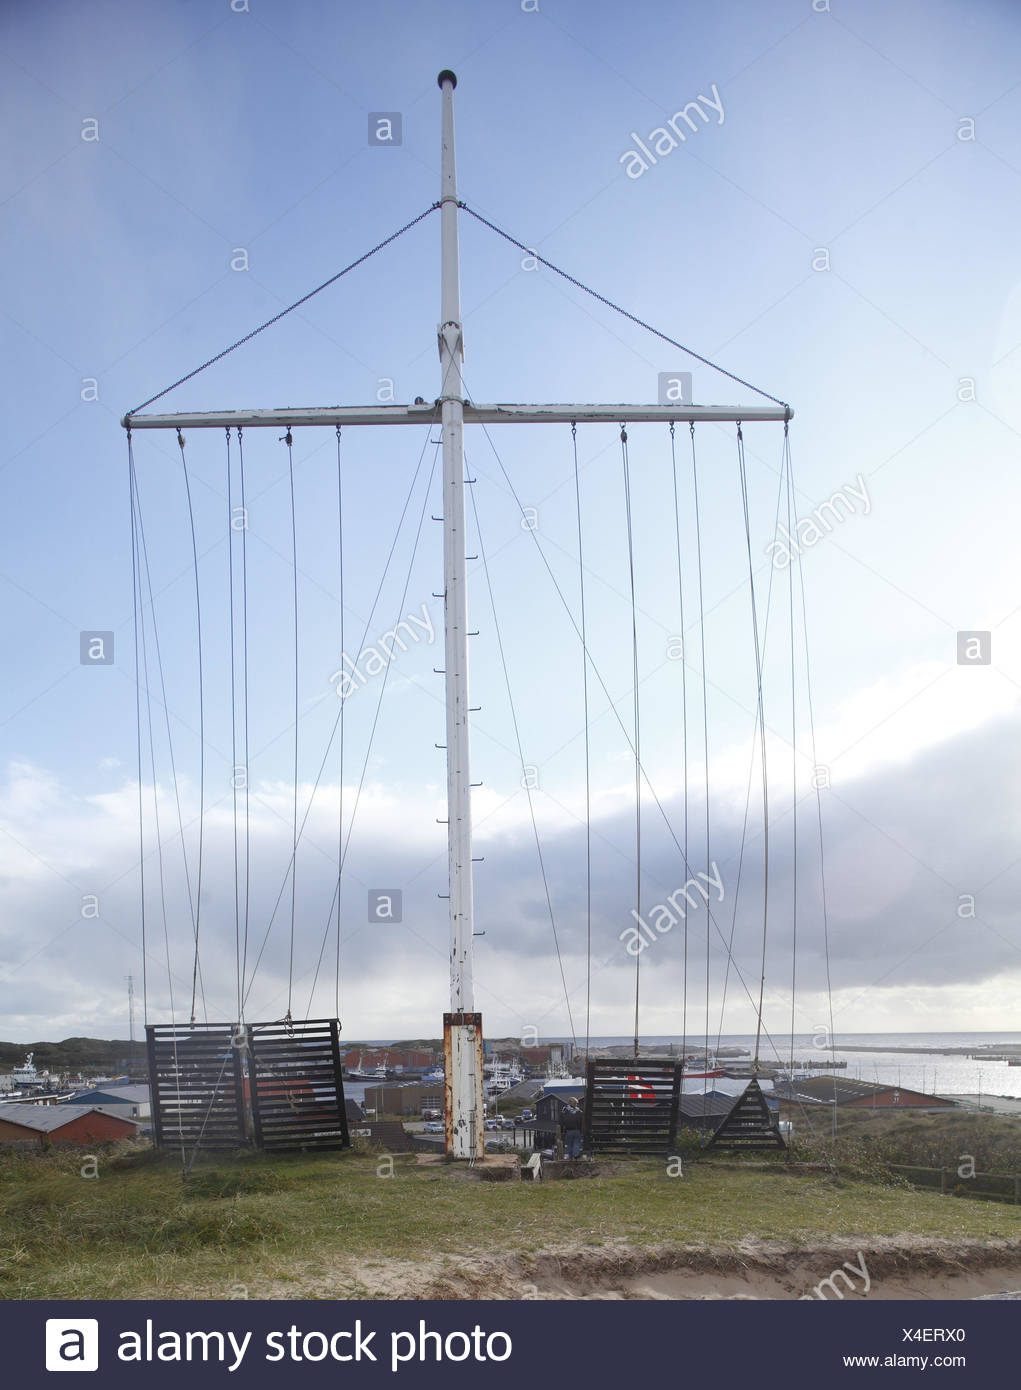 Denmark, Jutland, flagpole with view at the fishing port Hvide sand, - Stock Image